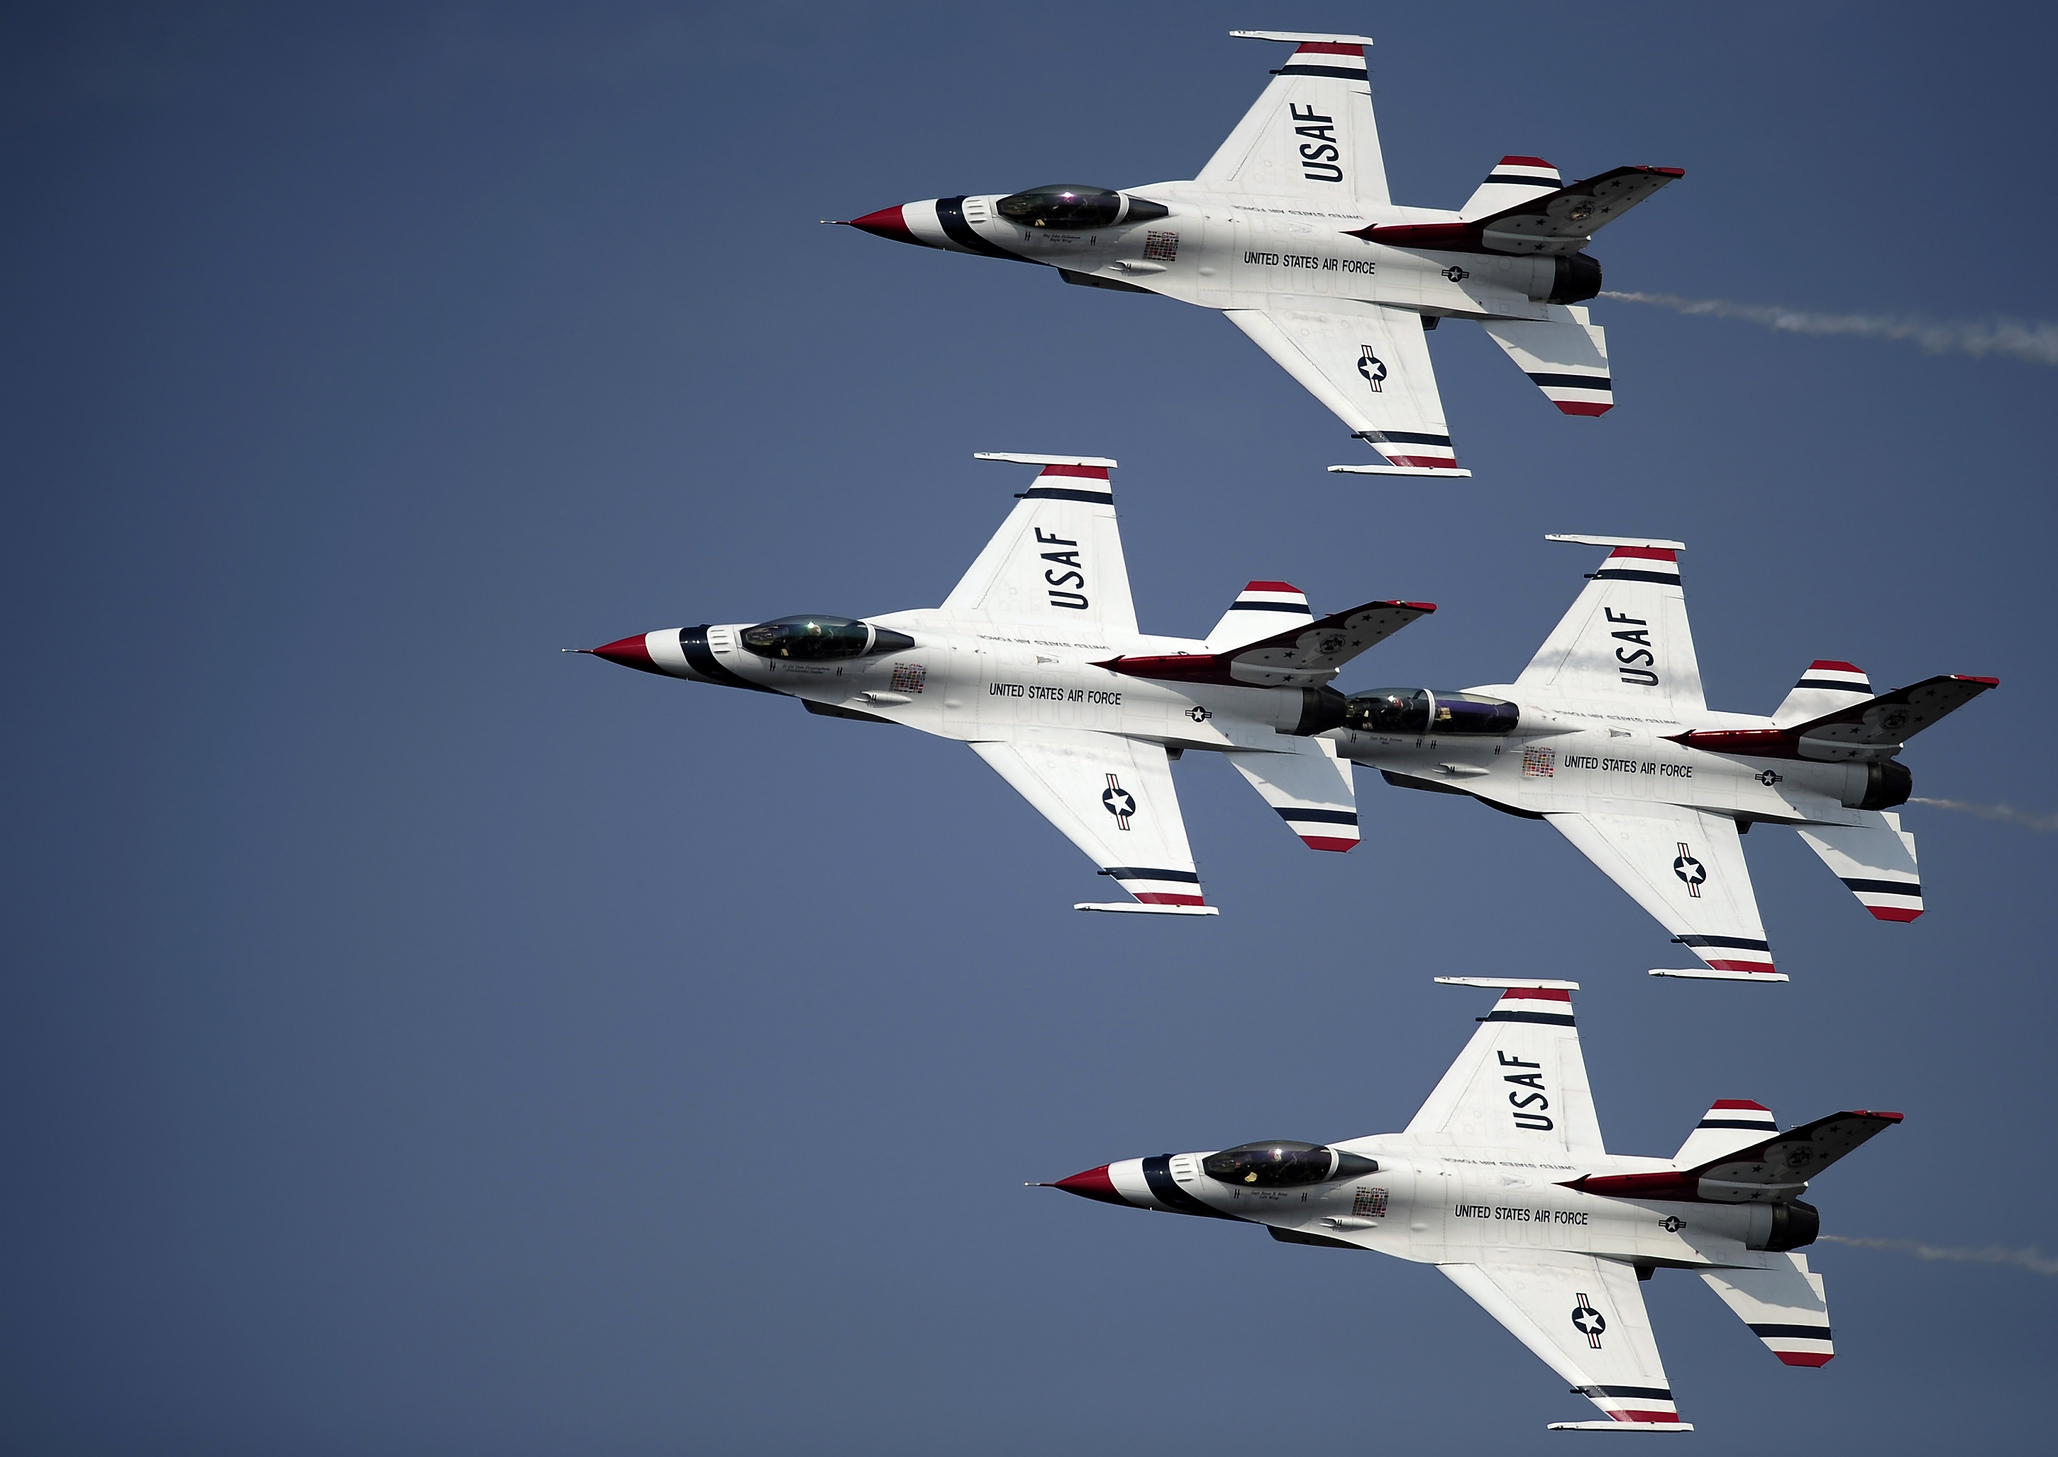 April 9, 2011 - The U.S. Air Force Thunderbird demonstration team performs in their F-16 C/D Fighting Falcons at the Charleston Air Expo, Joint Base Charleston South Carolina. The Thunderbirds closed the 2011 Charleston Air Expo in dramatic fashion as they dazzled an expected crowd of 100,000 people.